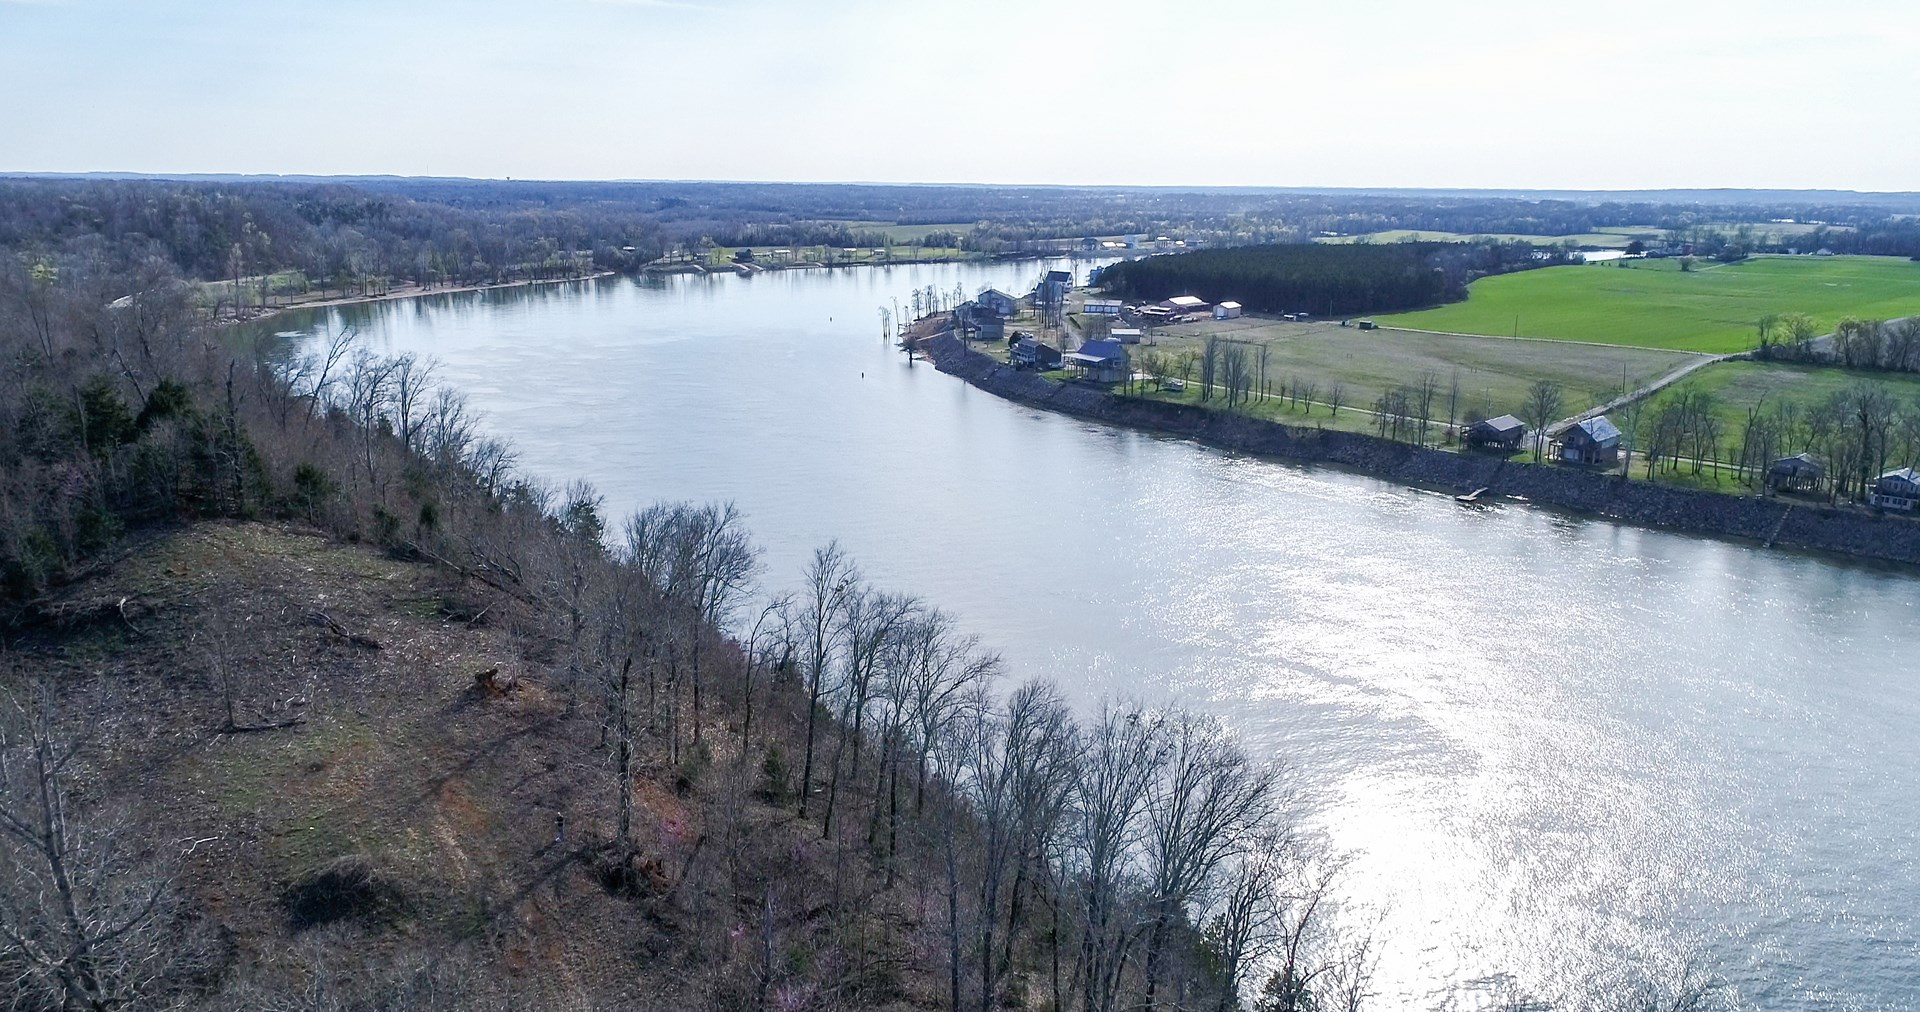 TN RIVER FRONT LAND FOR SALE TO BUILD ON, VIEWS, PRIVATE